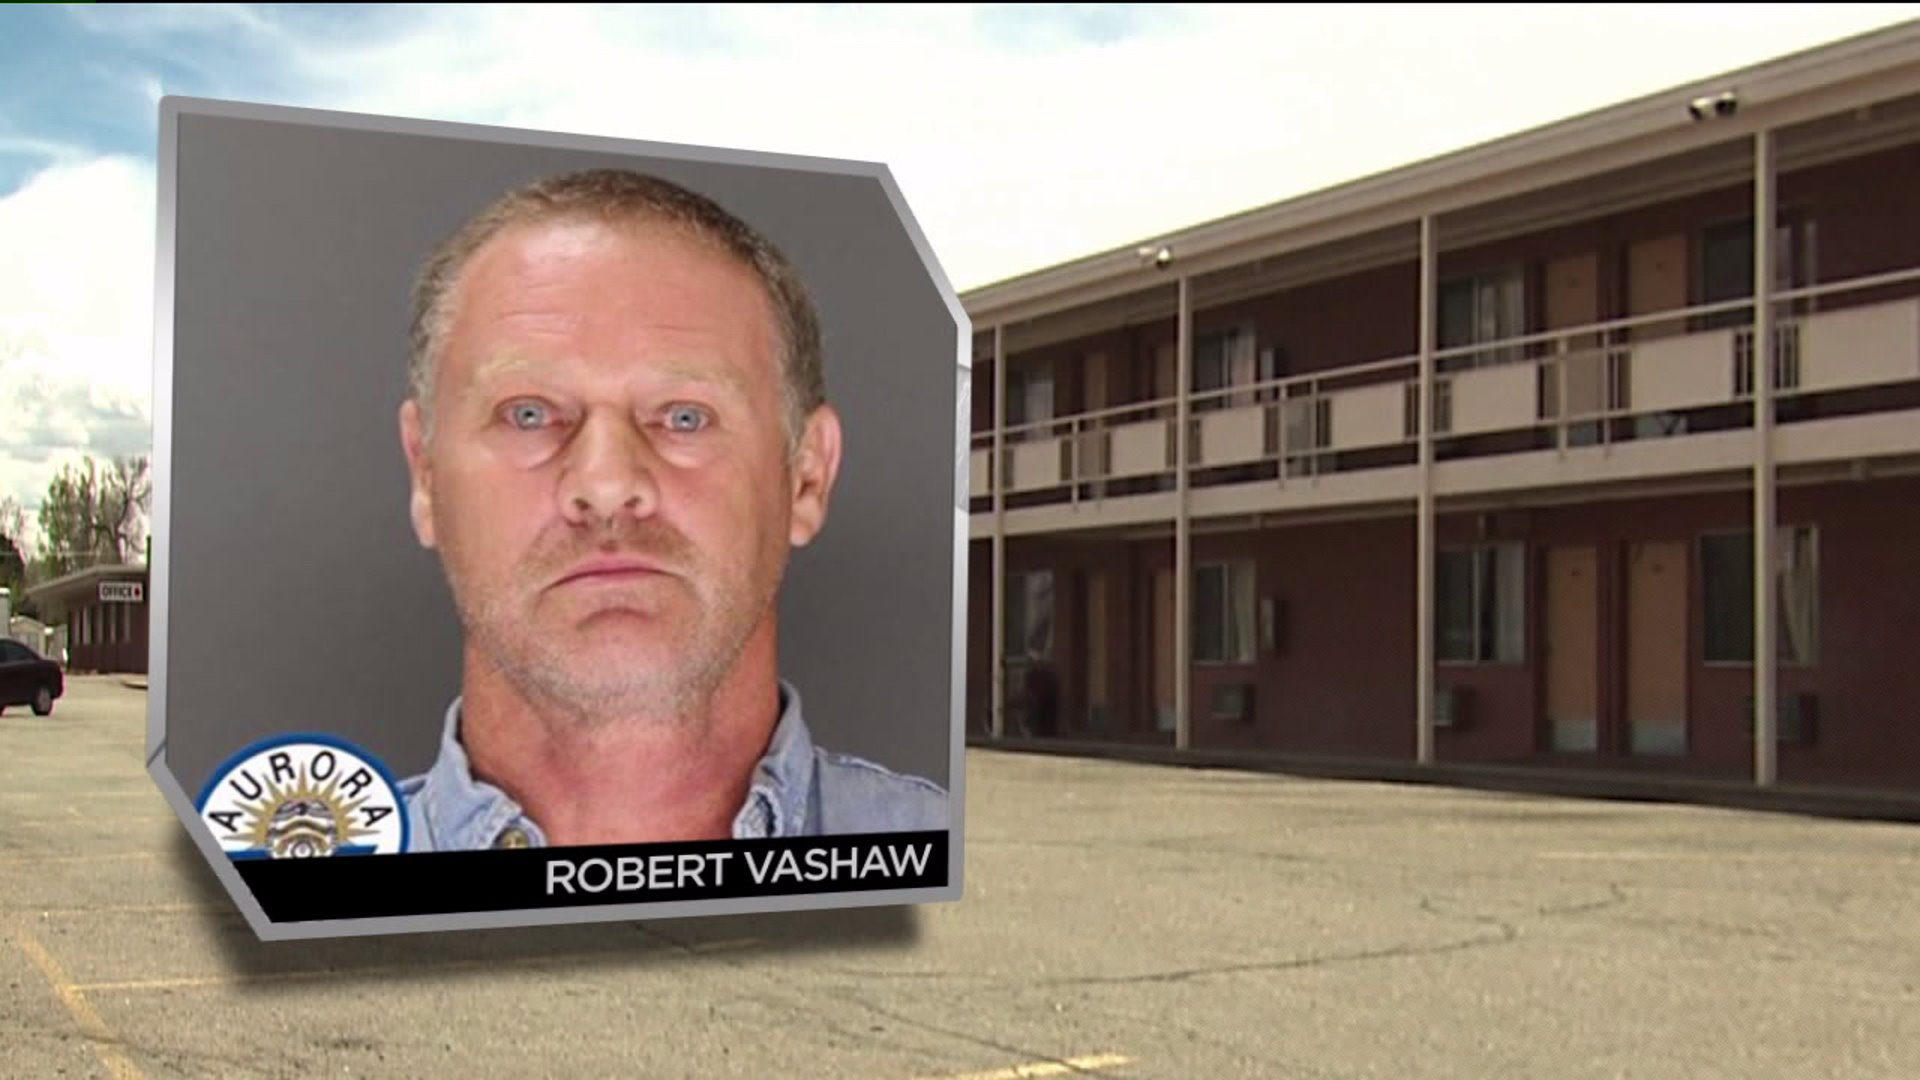 Former School Board President Sentenced for Trying to Lure 12-Year-Old